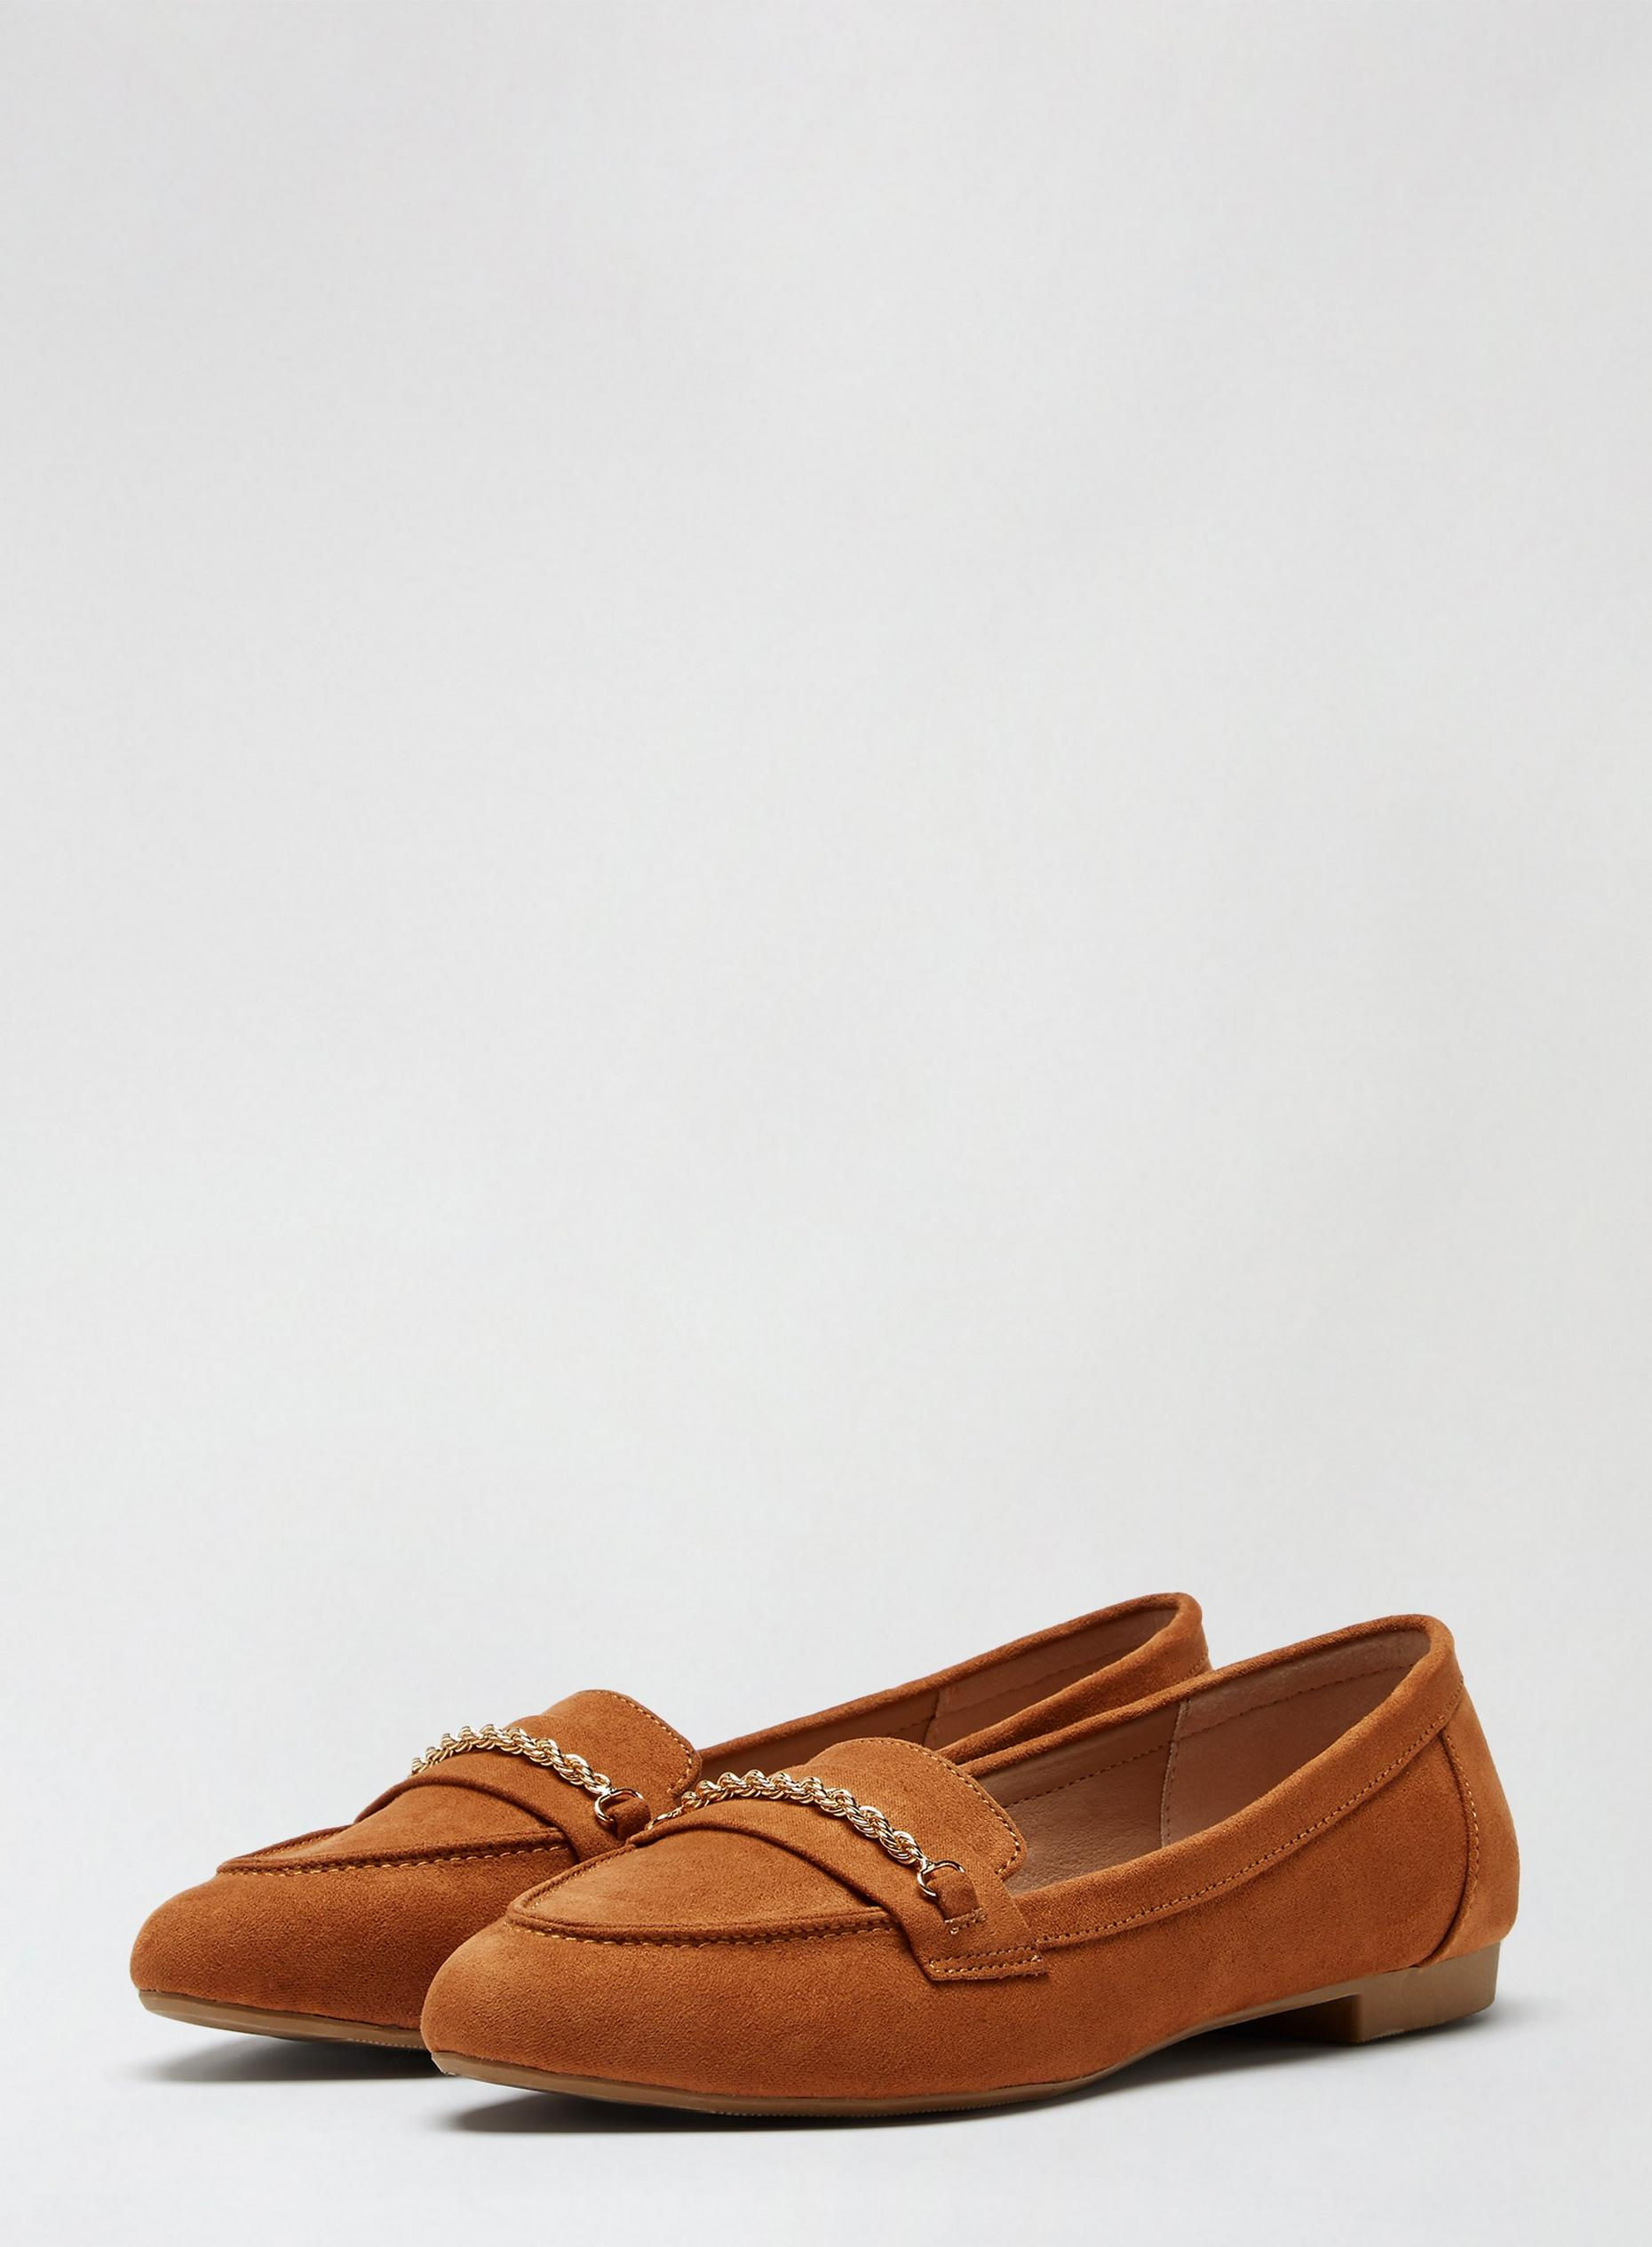 Tan Preppy Loafers